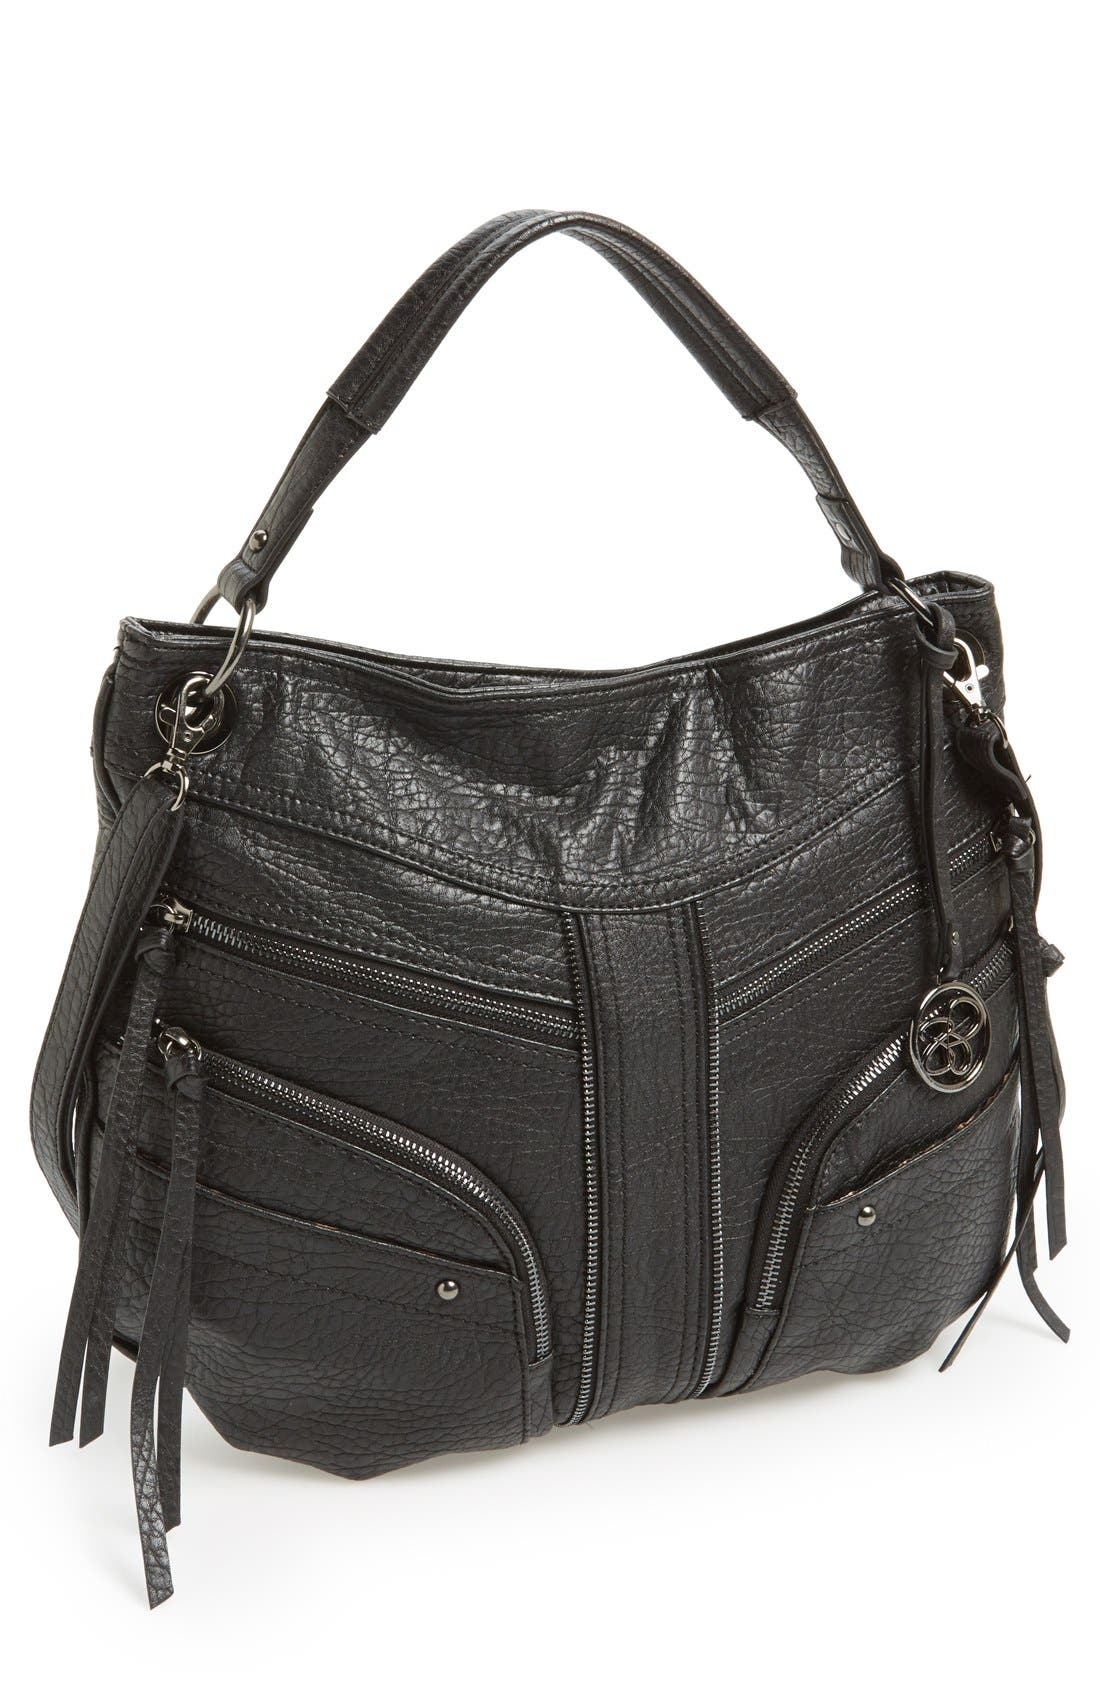 Main Image - Jessica Simpson 'Raina' Bucket Bag